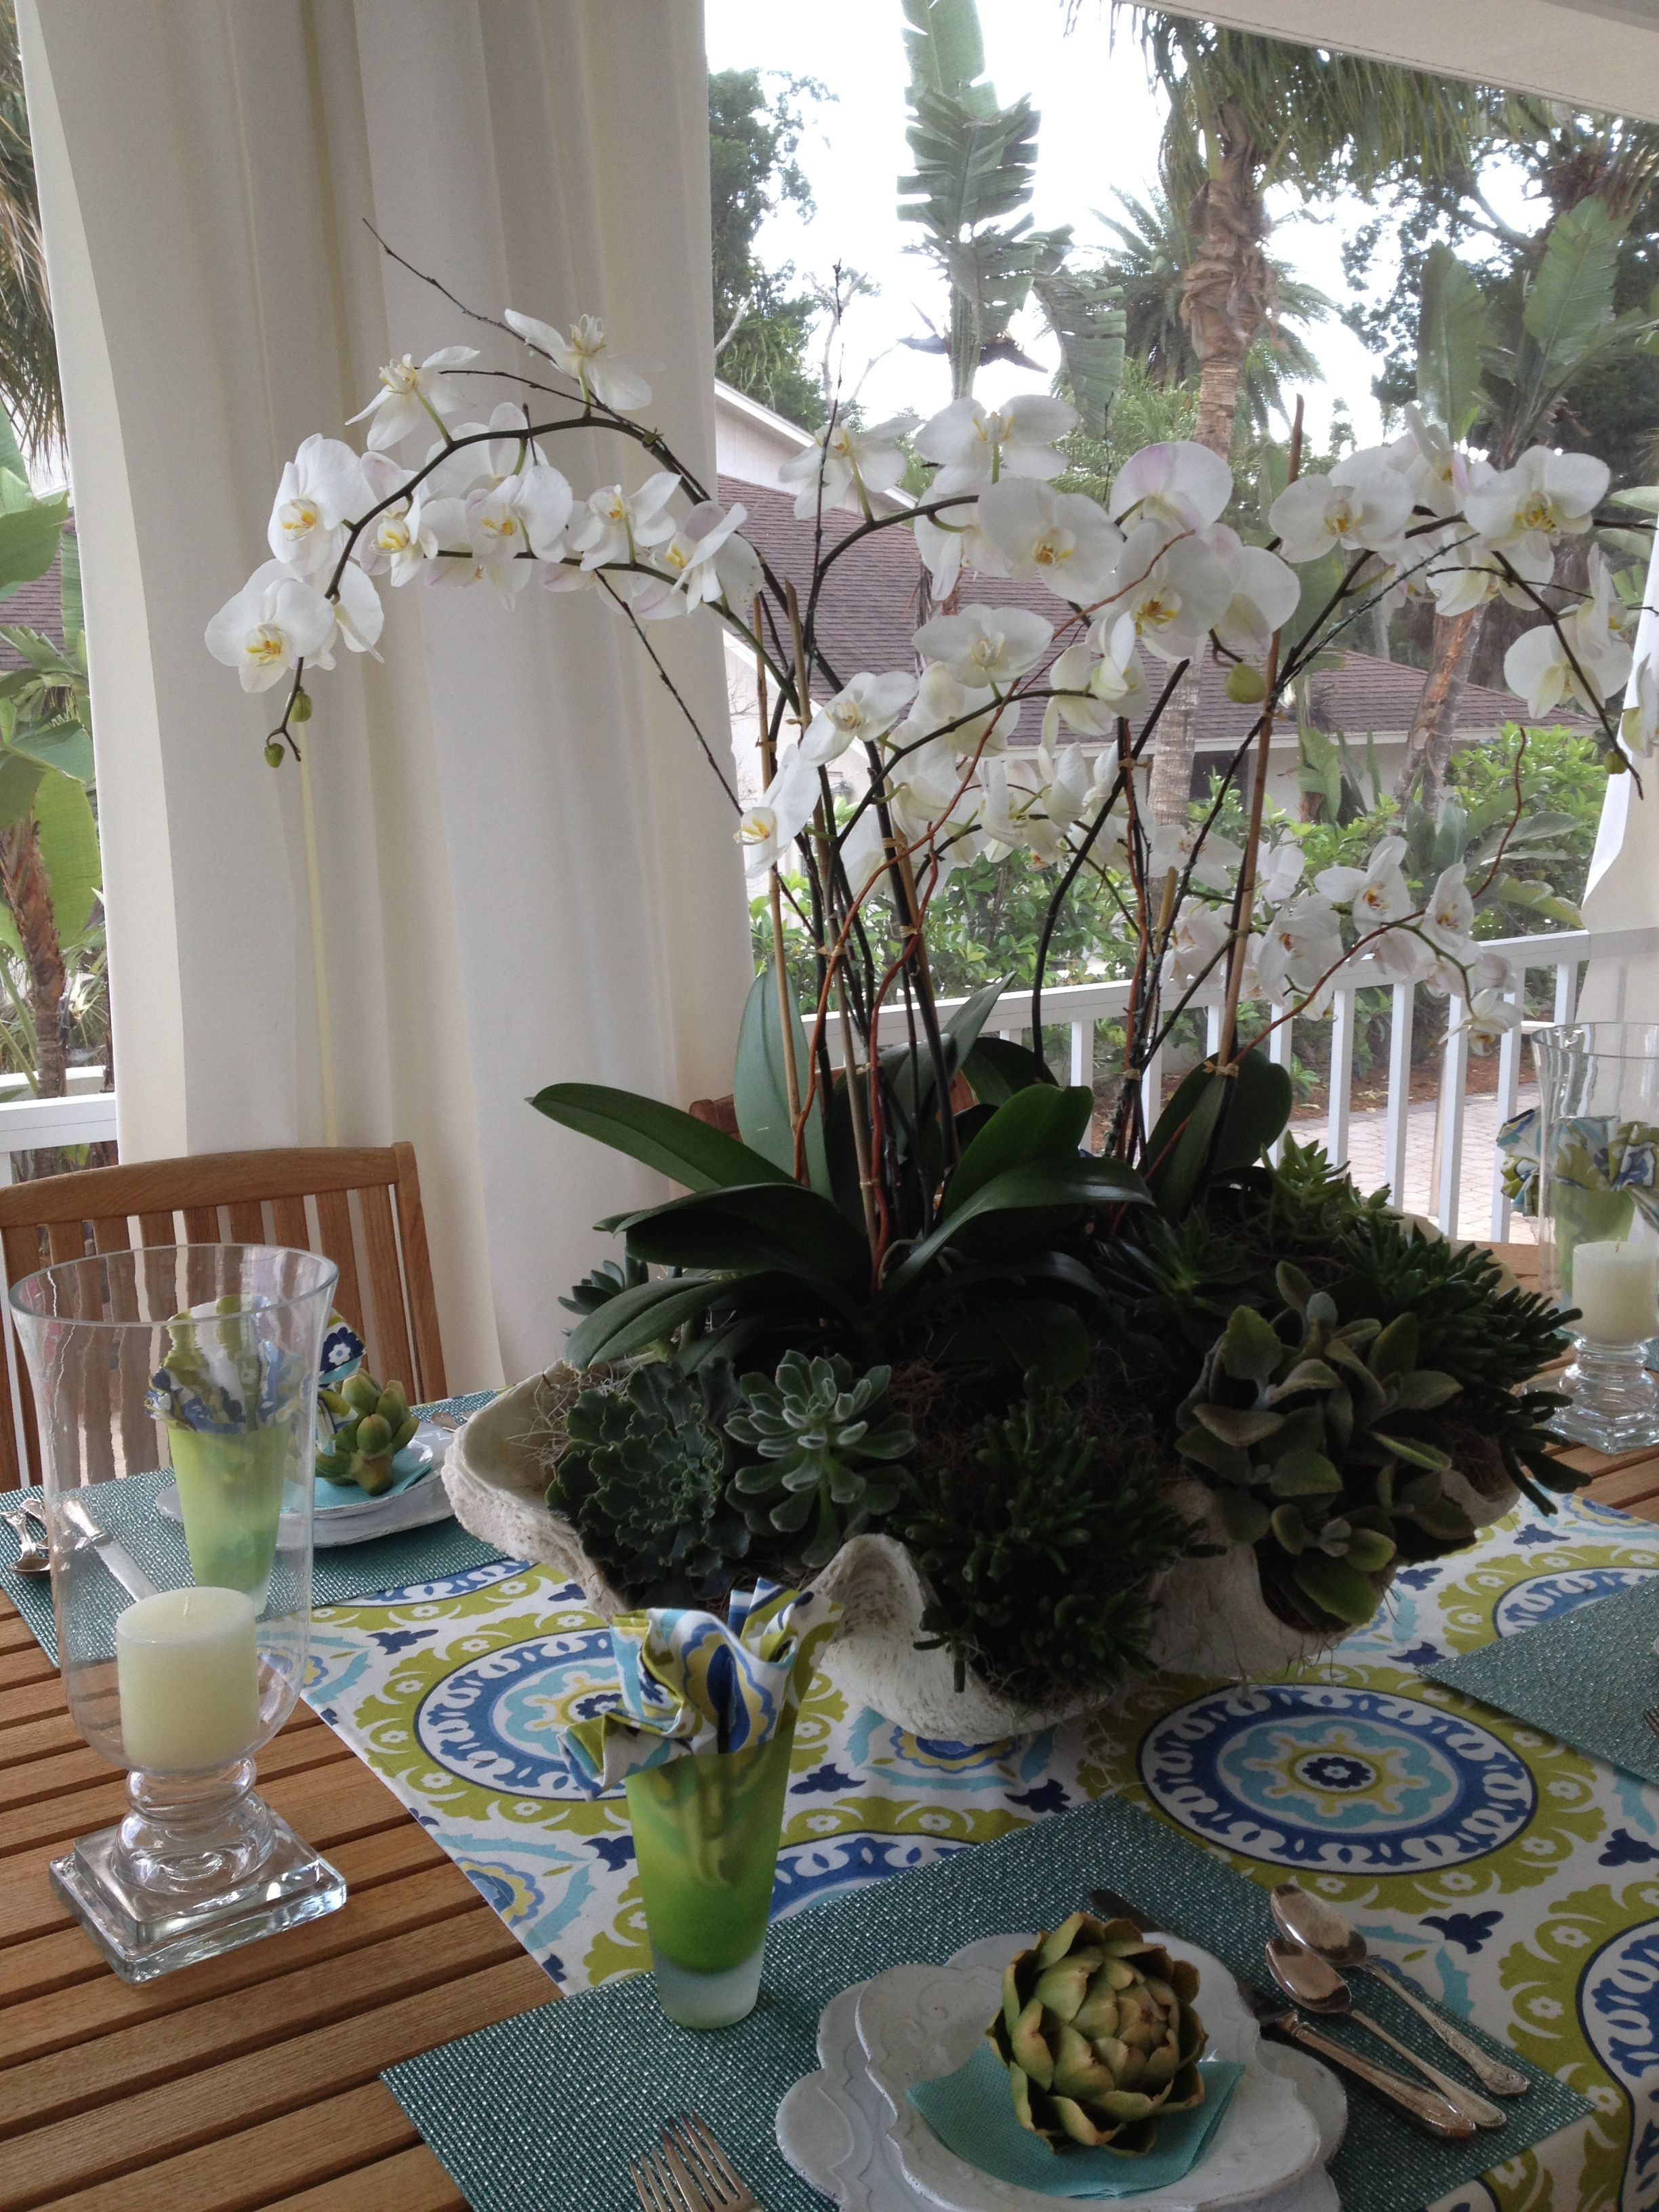 Gorgeous Florida Arrangement Orchids And Succulants In Large Shell Middle Of Outdoor Dining Table